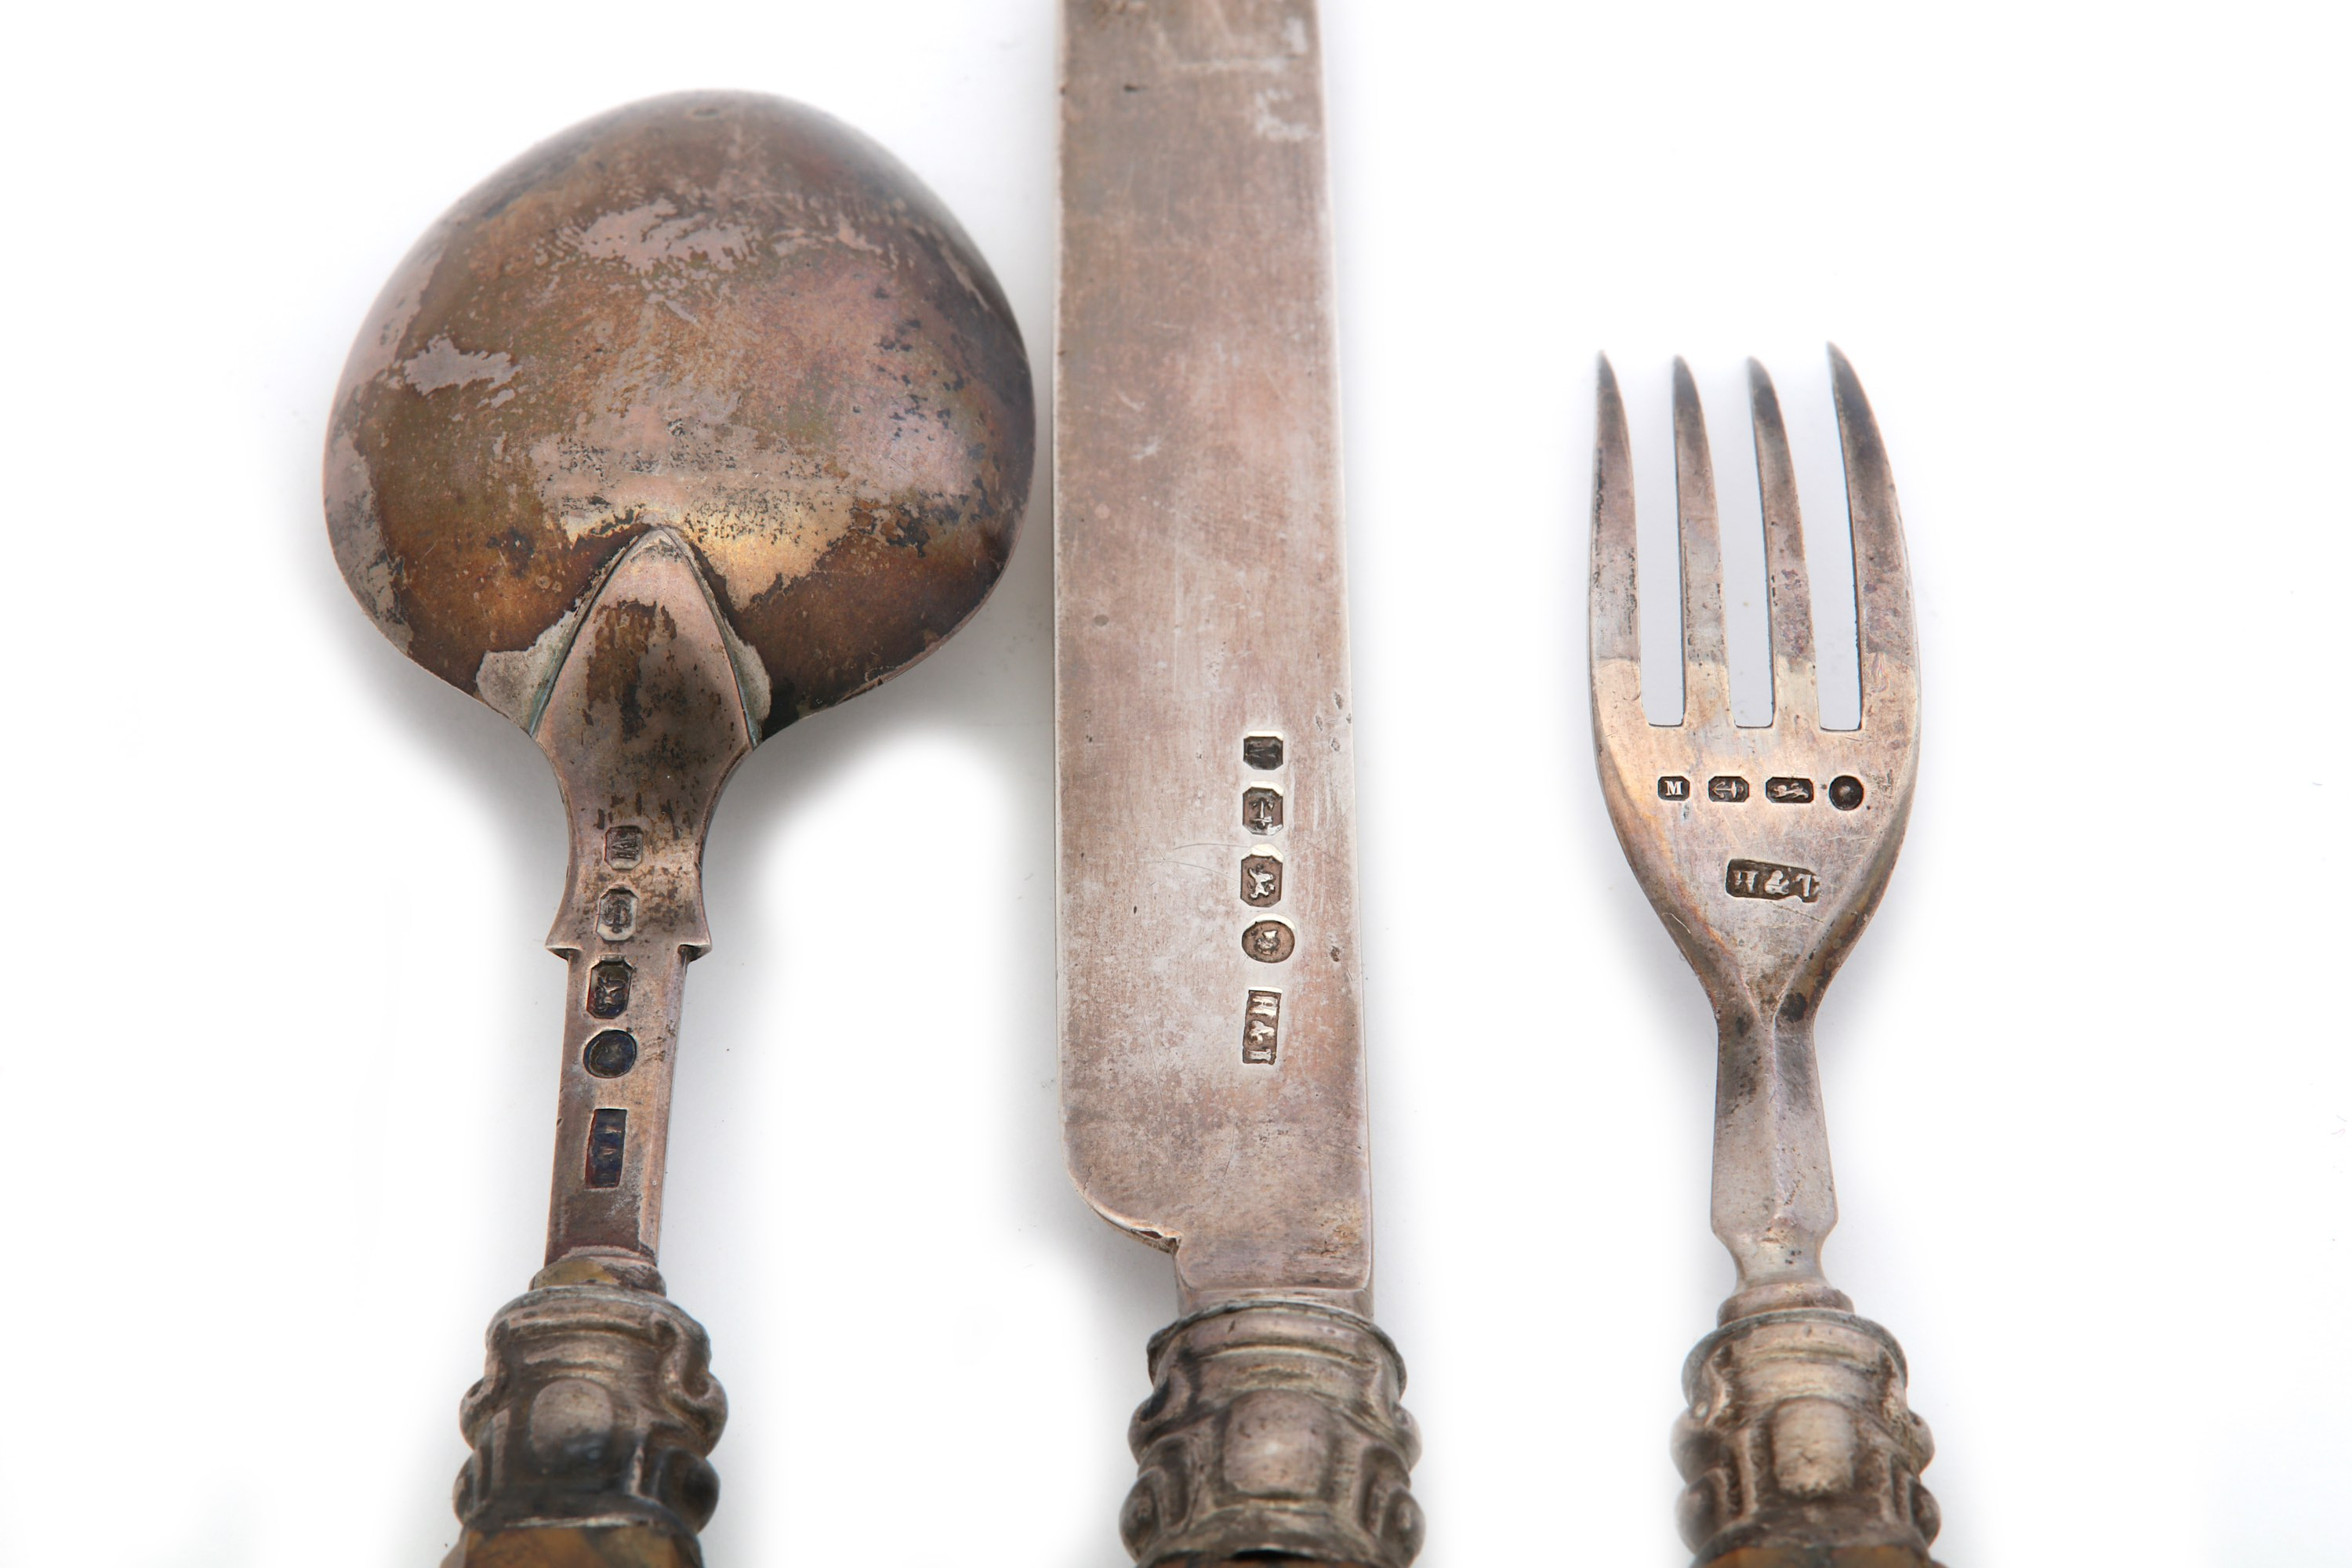 Lot 37 - An unusual Victorian travelling spoon, fork and knife set, jasper handled, Birmingham 1861 by Hillia